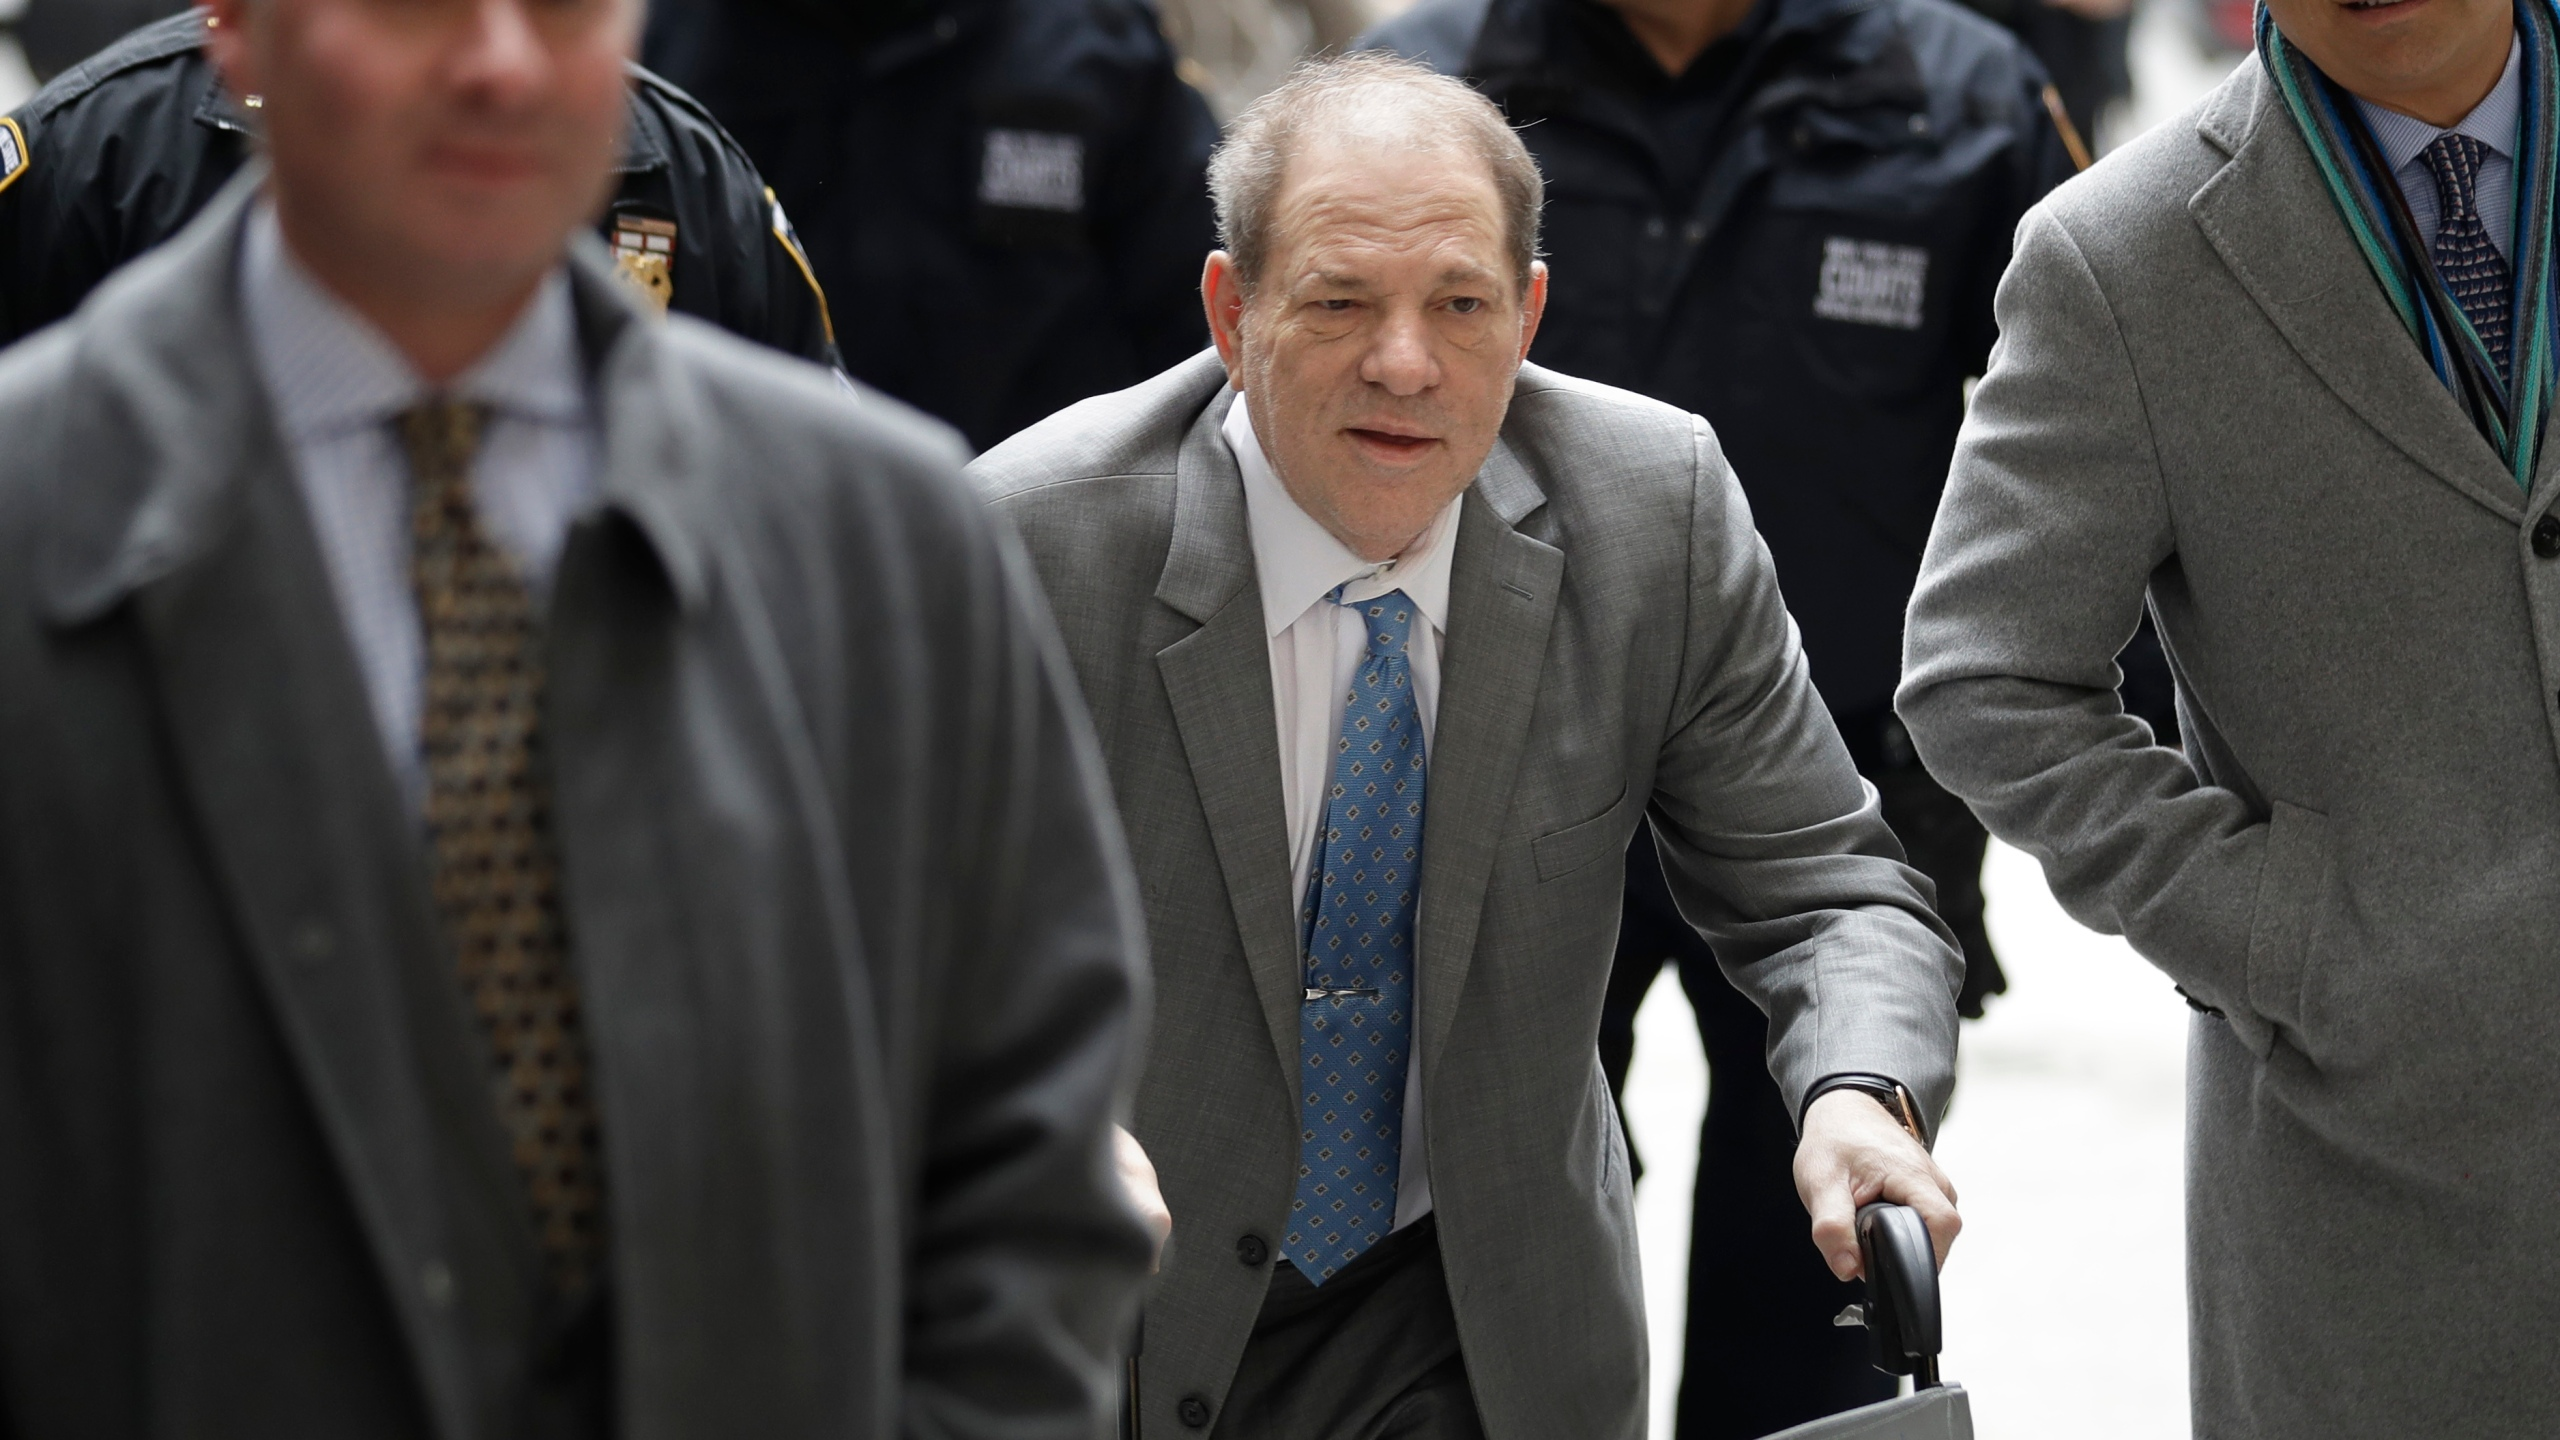 Harvey Weinstein arrives at a Manhattan courthouse for his rape trial in New York, Tuesday, Feb. 18, 2020. (AP Photo/Seth Wenig)